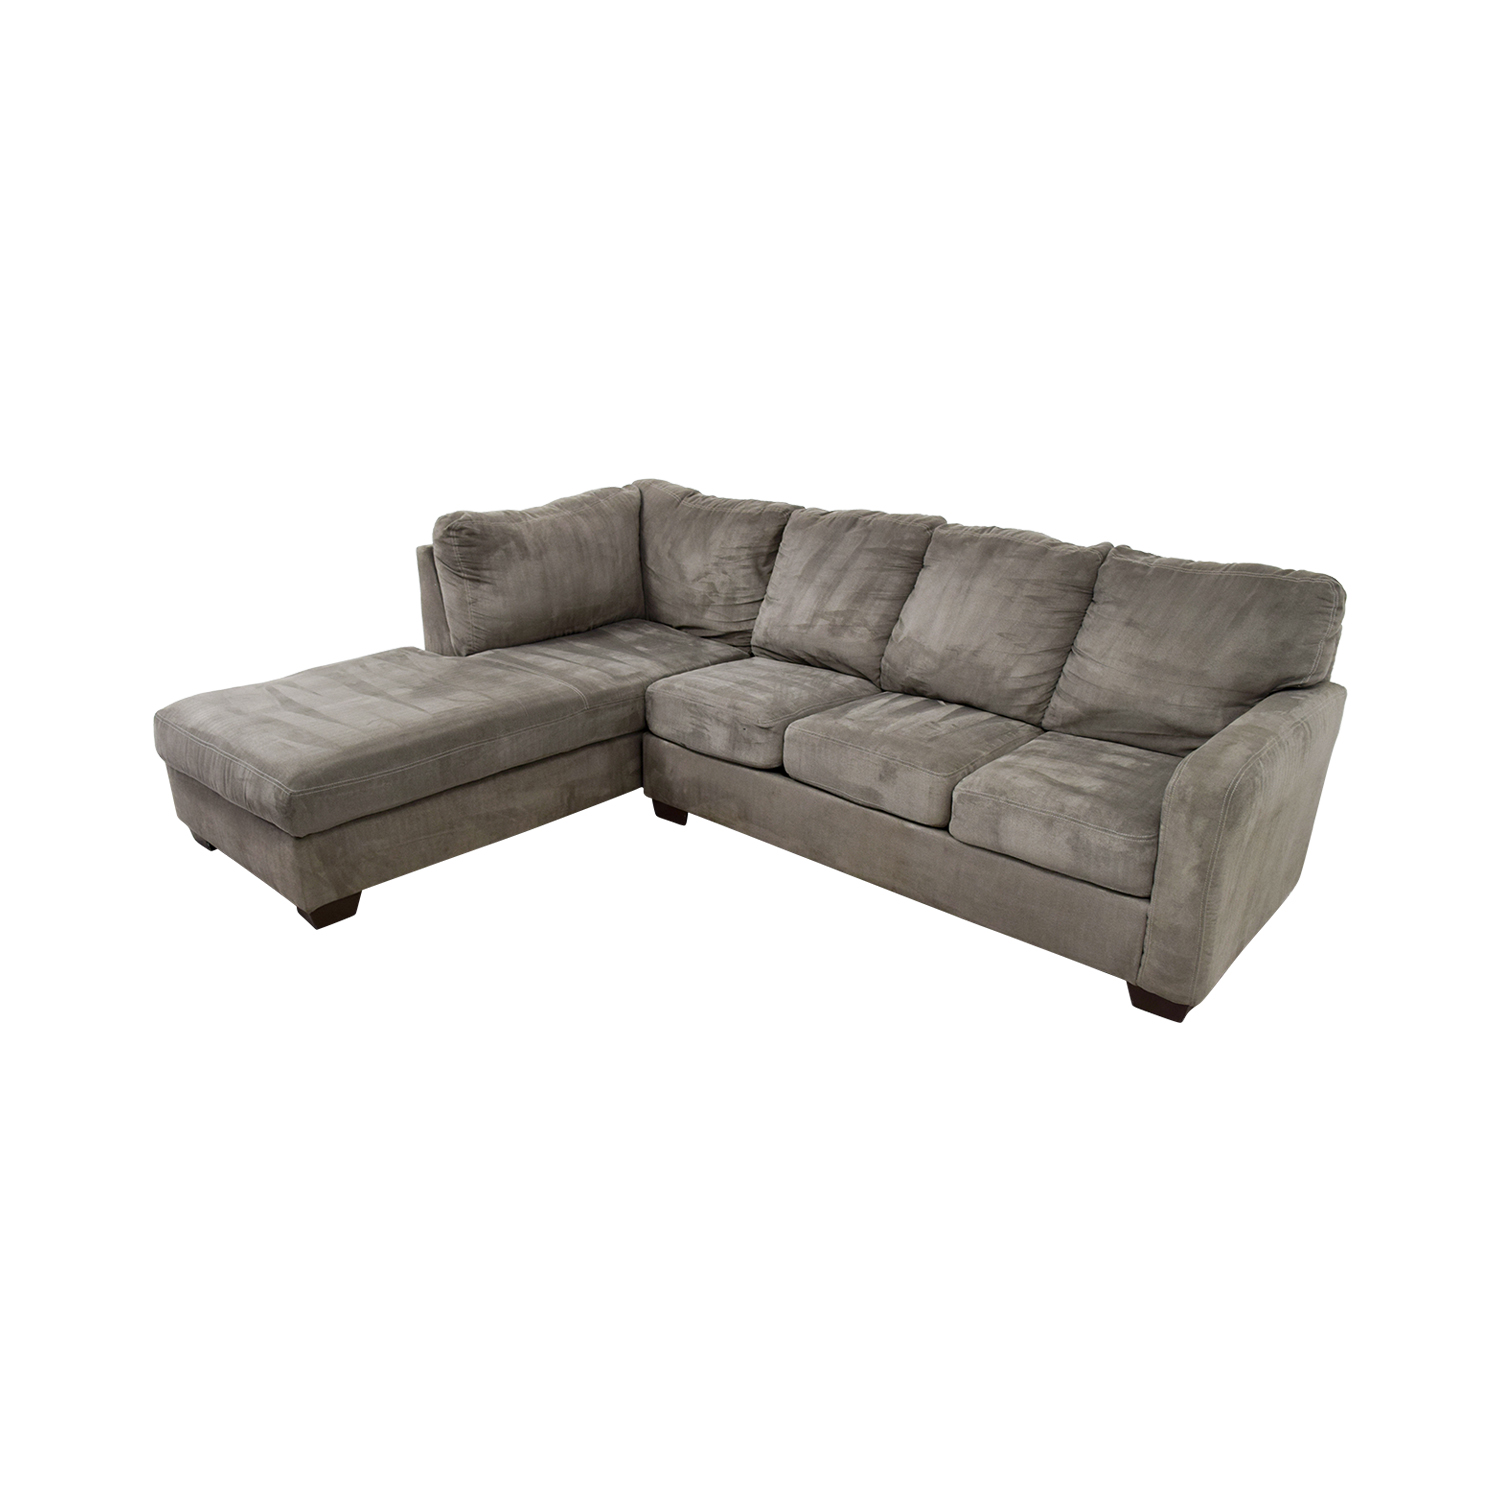 56 Off Living Spaces Living Spaces Zella Charcoal